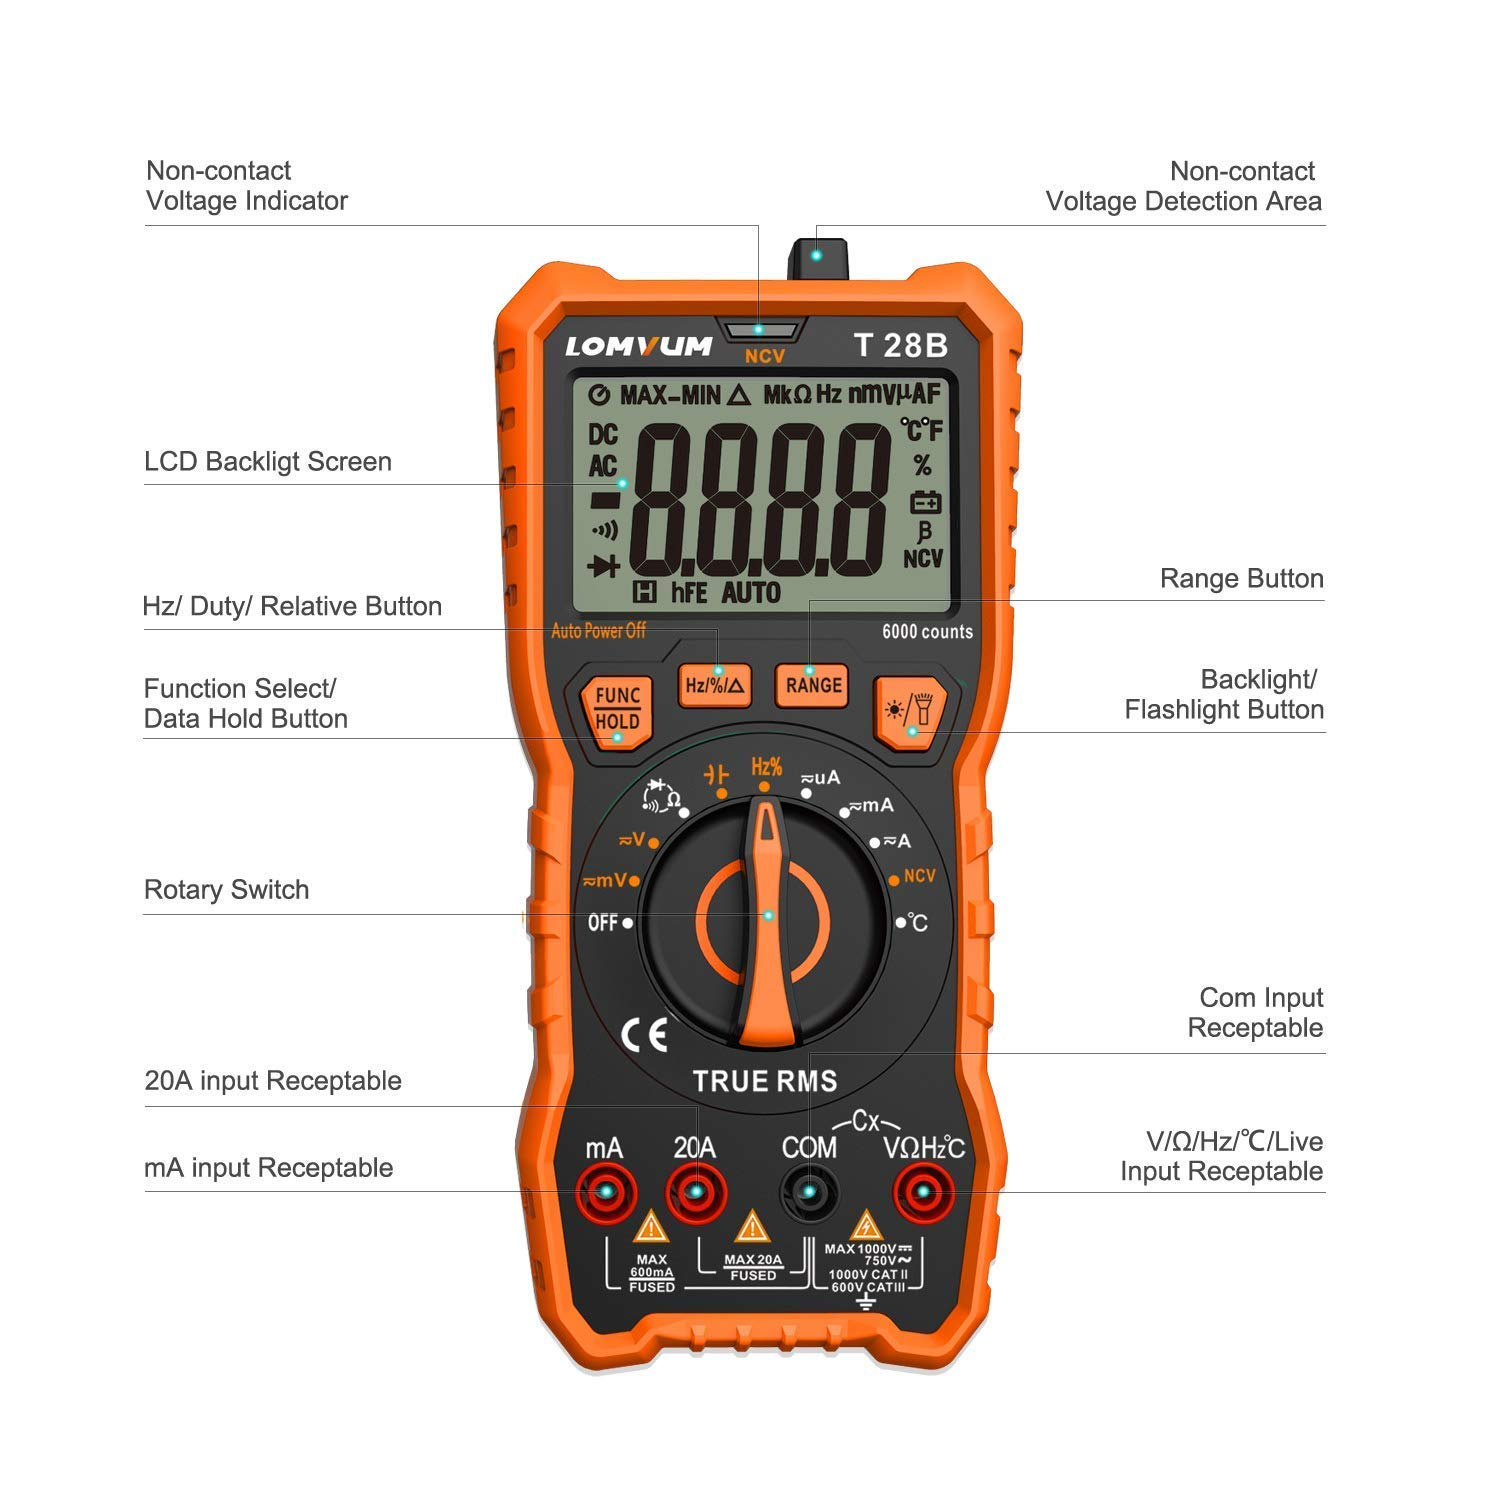 LOMVUM Digital Multimeter Tester, TRMS 6000 Counts Volt Meter Ranging; Measures Voltage Tester, Current, Resistance, Continuity, Frequency; Tests Diodes, Transistors, Temperature